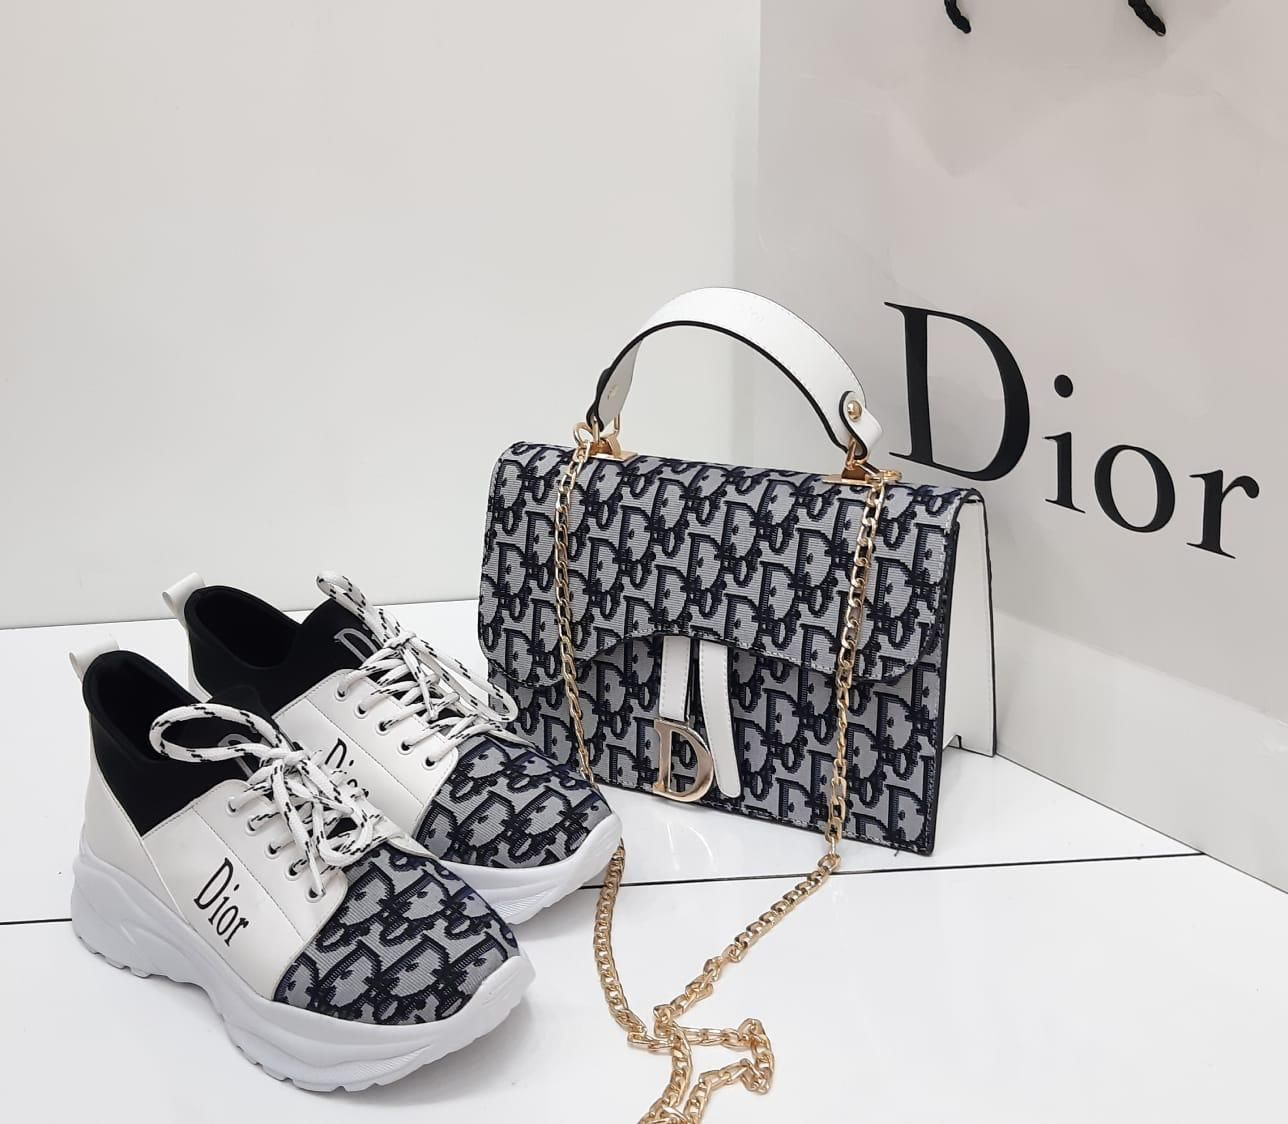 Pin by Natalie Davis on Shoes with matching handbag